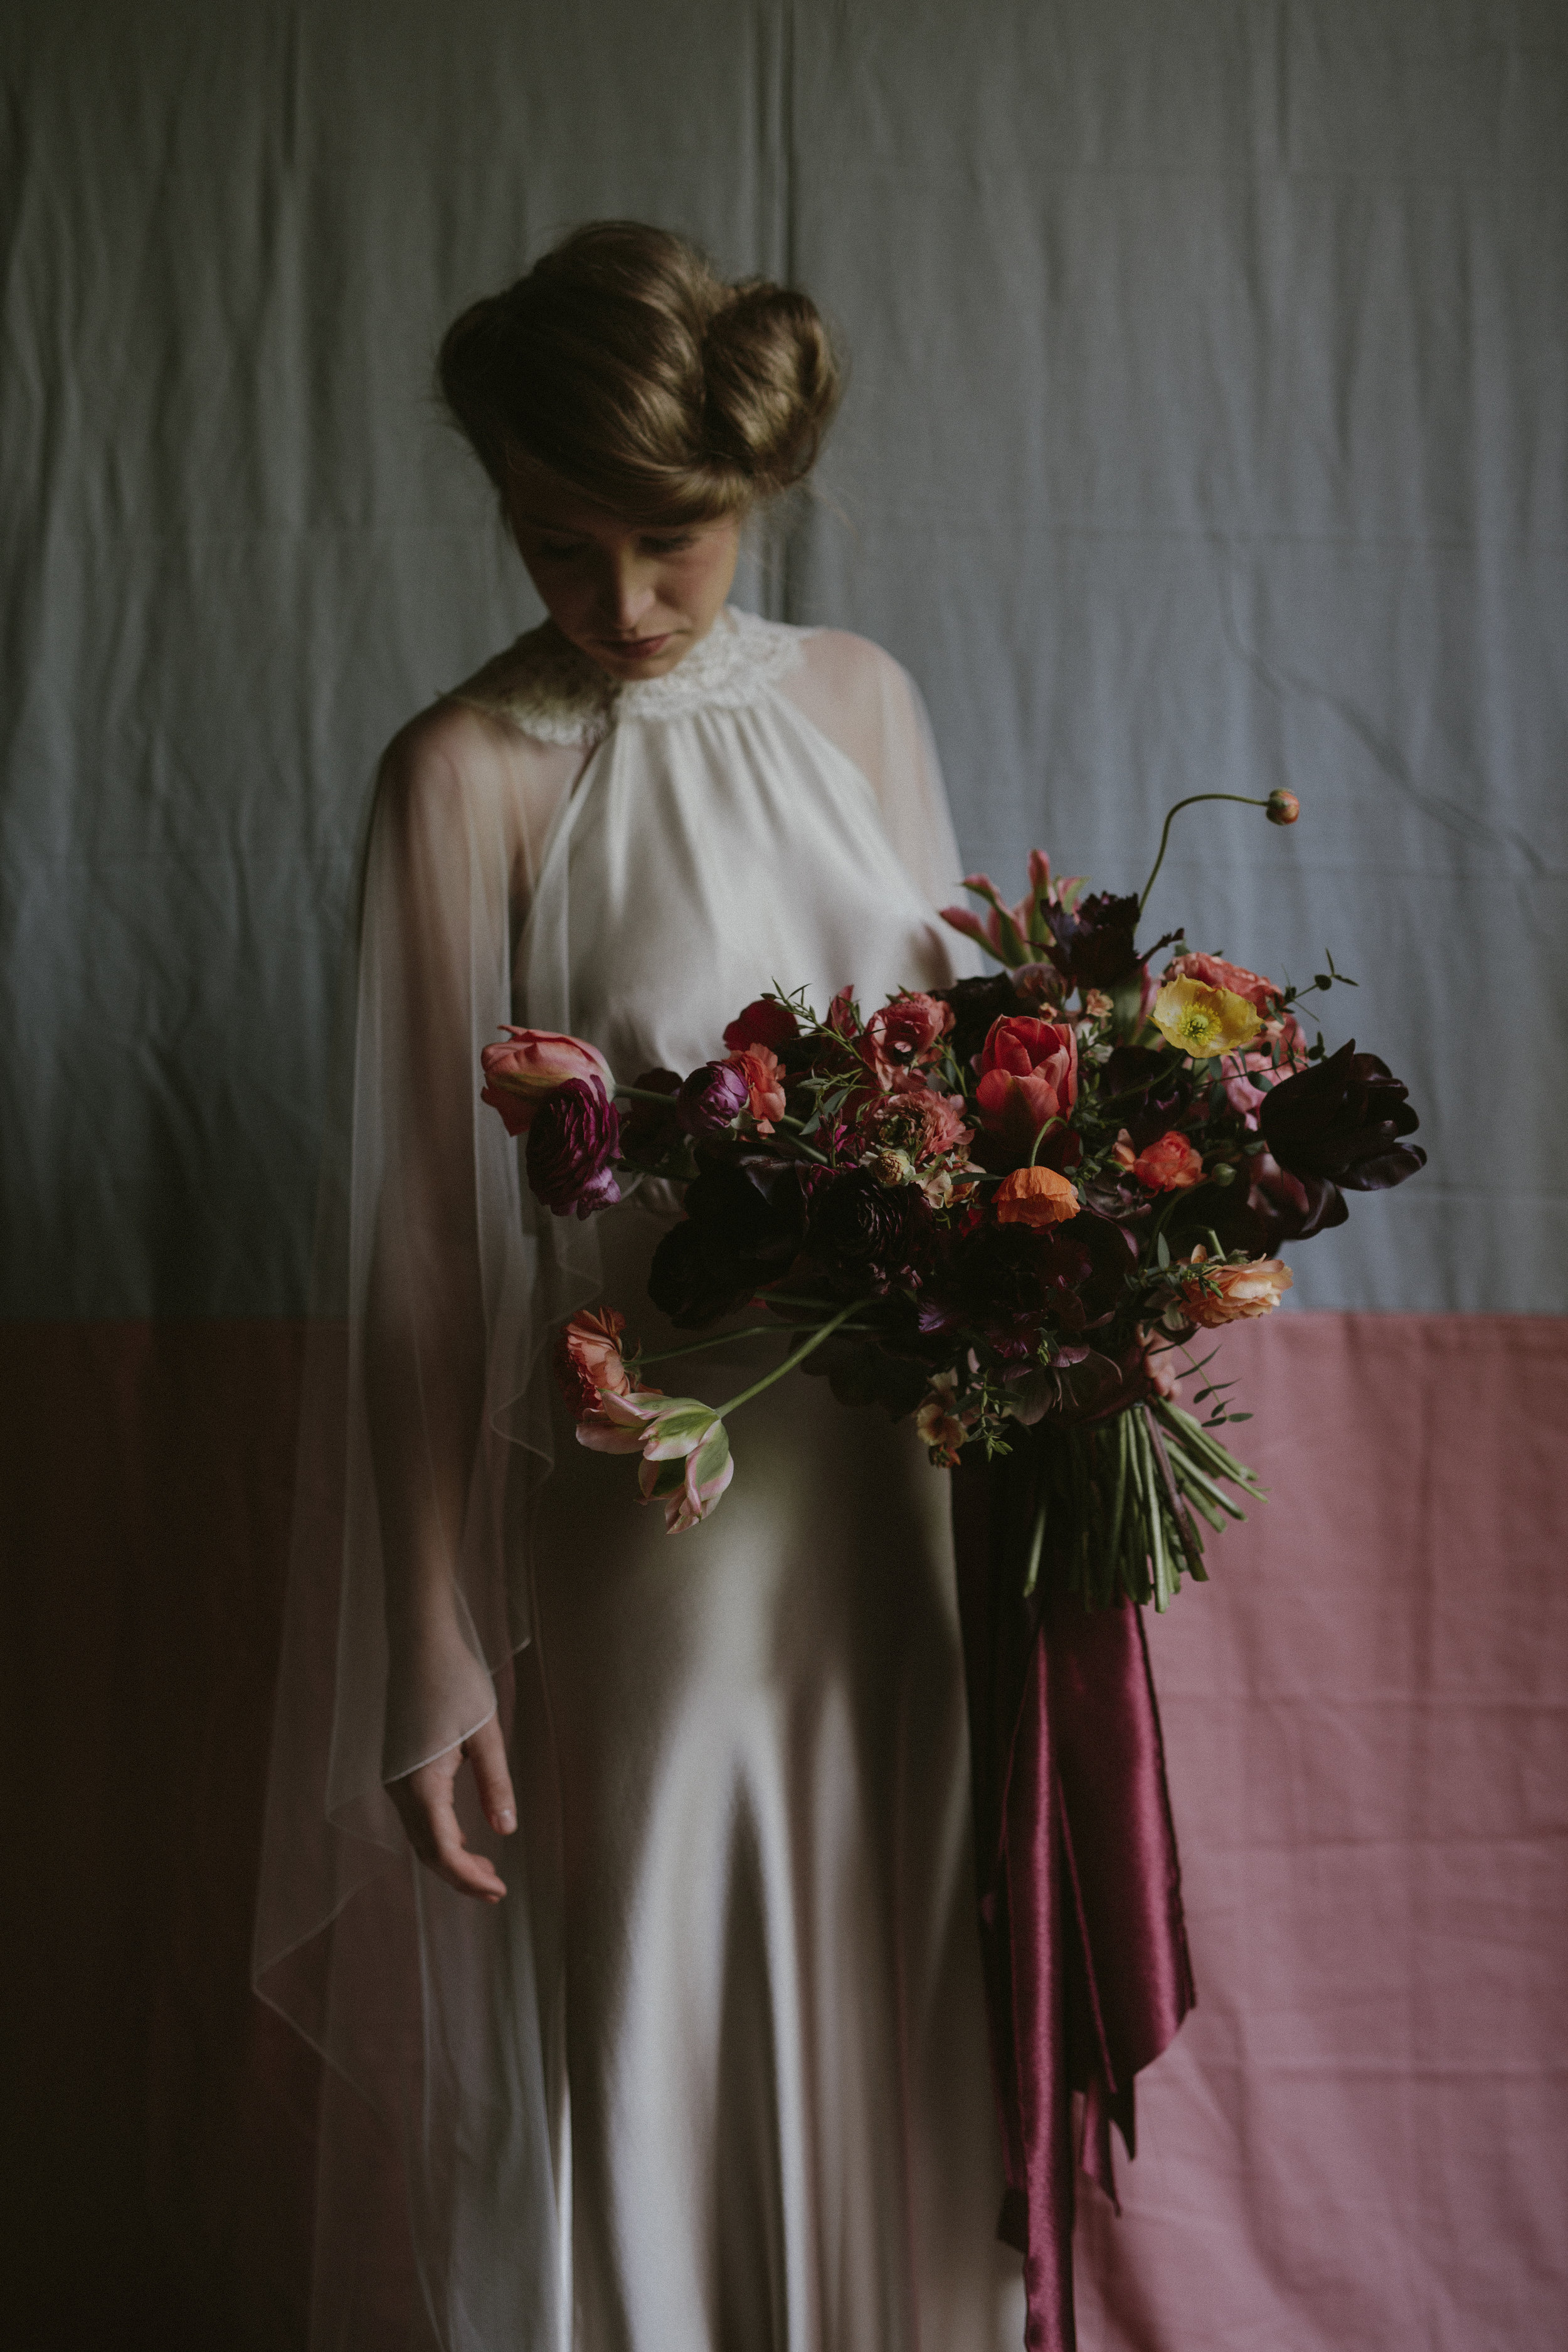 Agnes-and-bee-Kate-Beaumont-wedding-dresses-Ruth-Atkinson-8.jpg